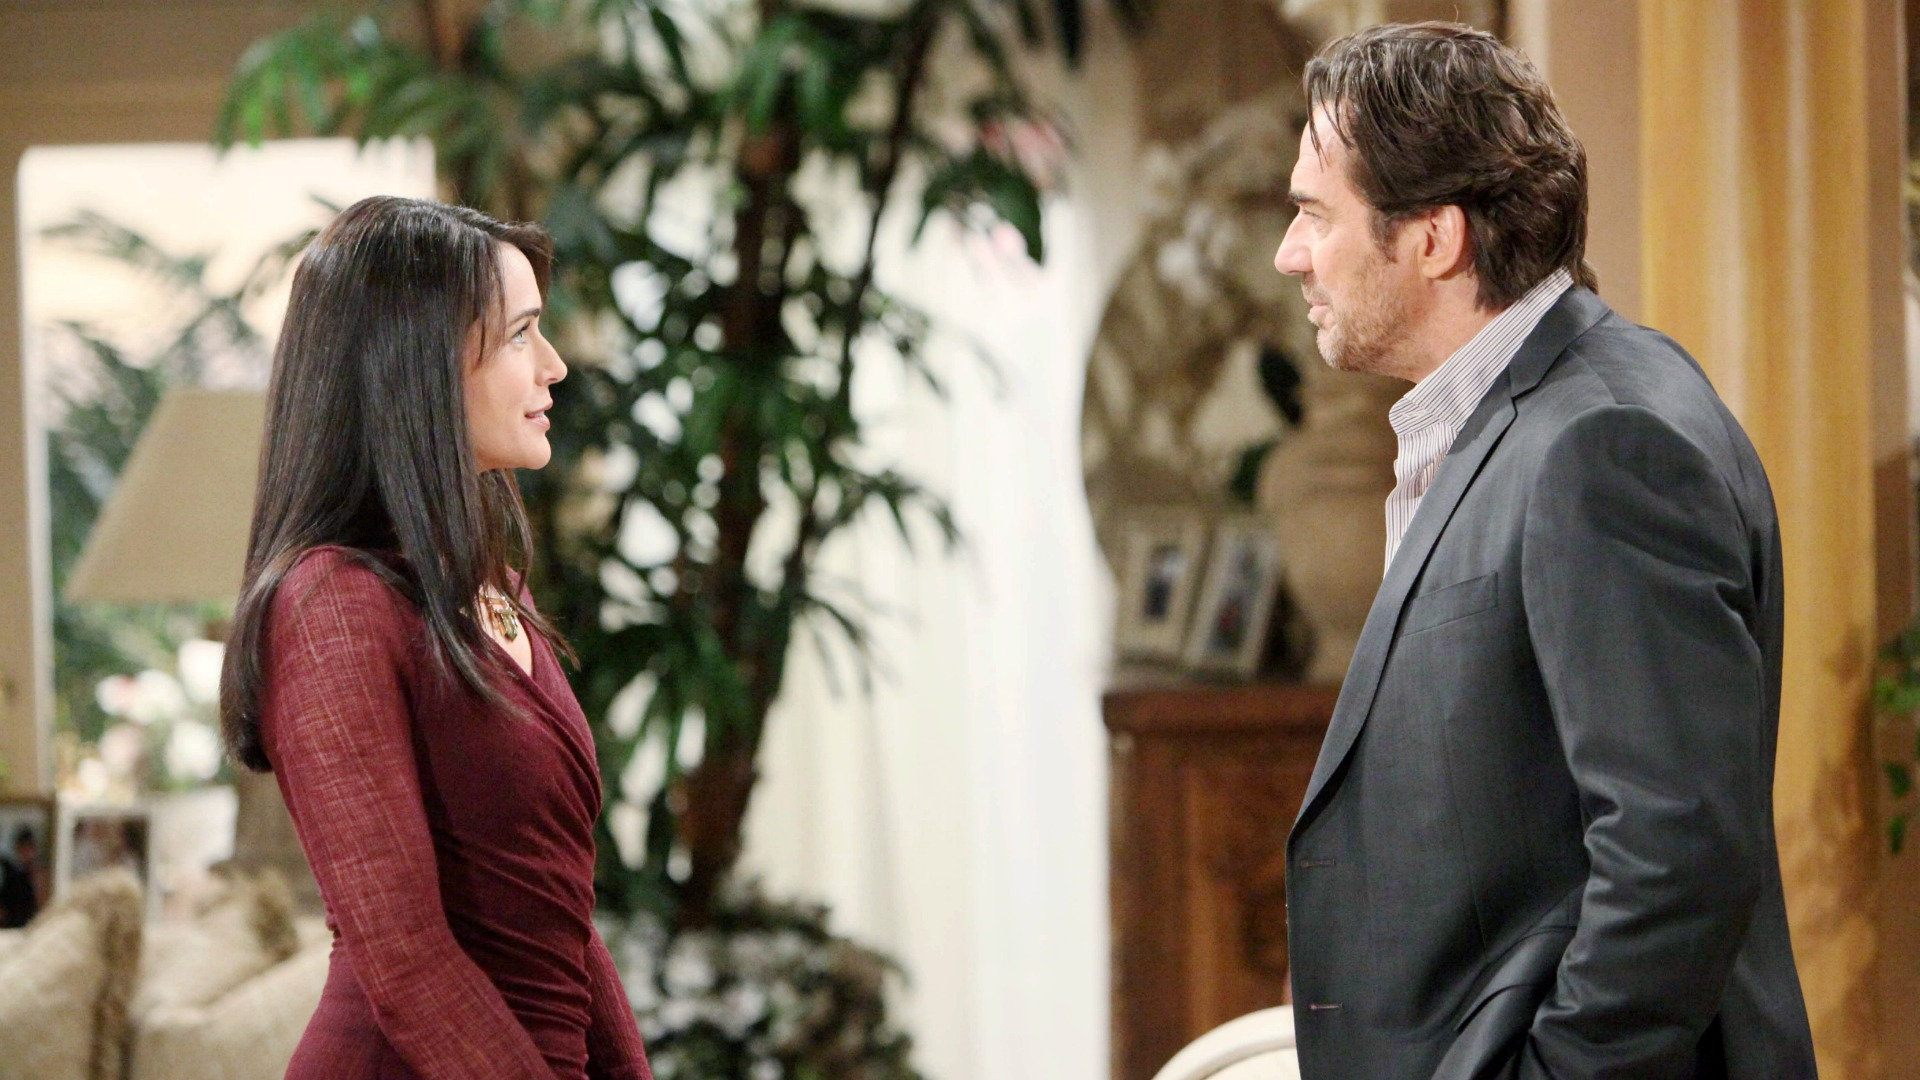 Ridge and Quinn come to an agreement regarding the dangerous flirtation that has been going on between them.